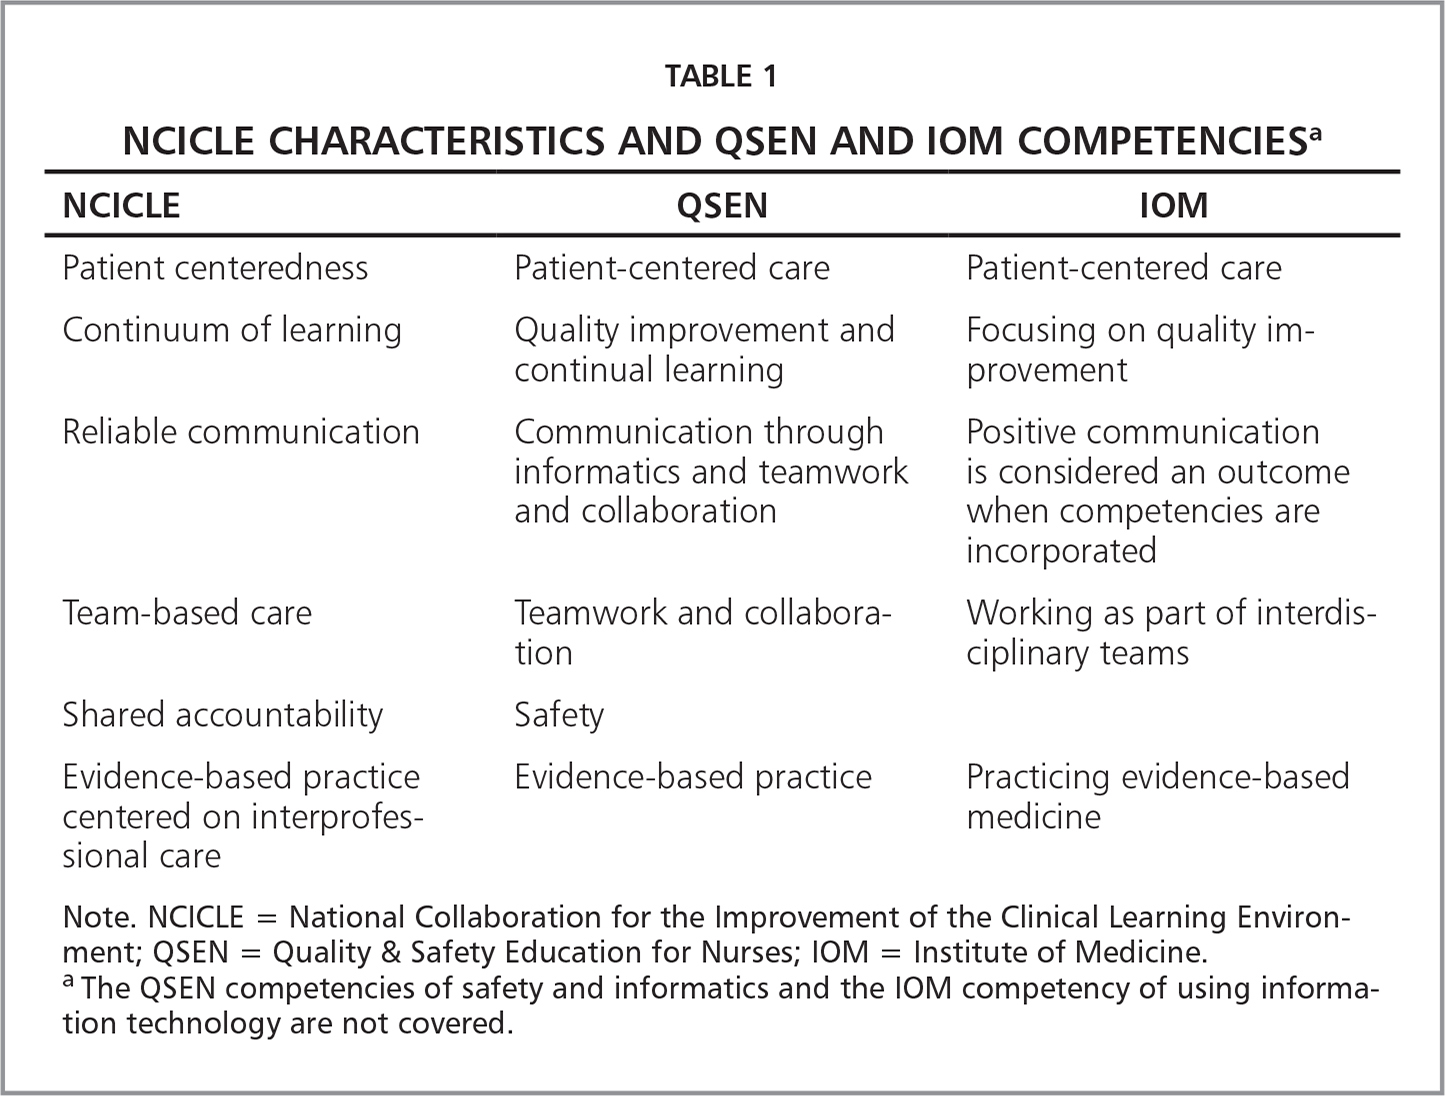 NCICLE Characteristics and QSEN and IOM Competenciesa